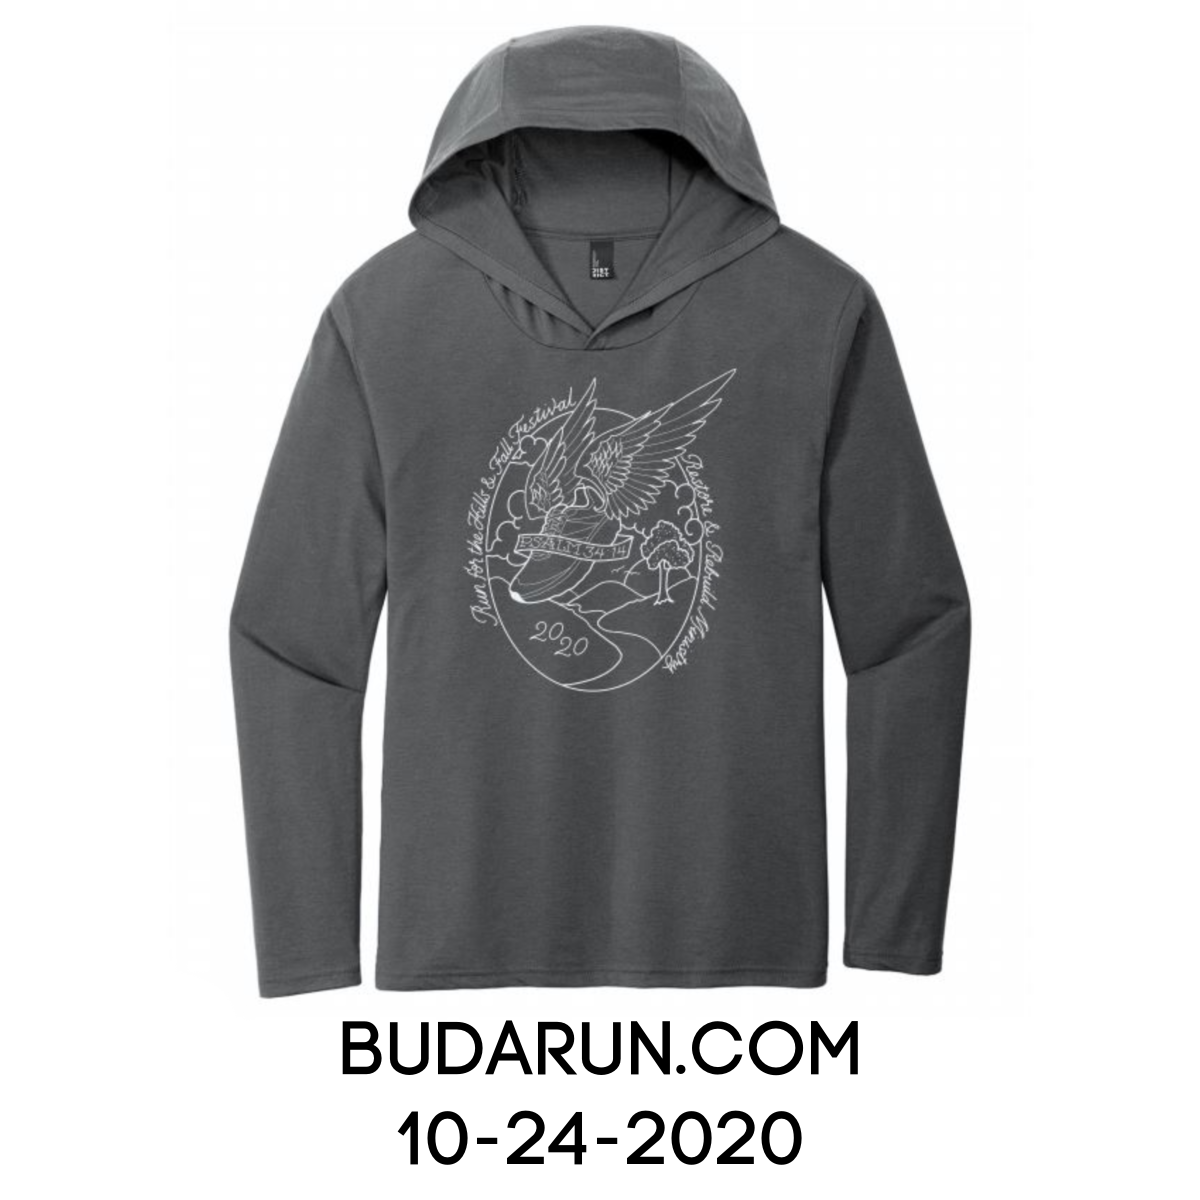 2020 Run for the Hills Shirt ad